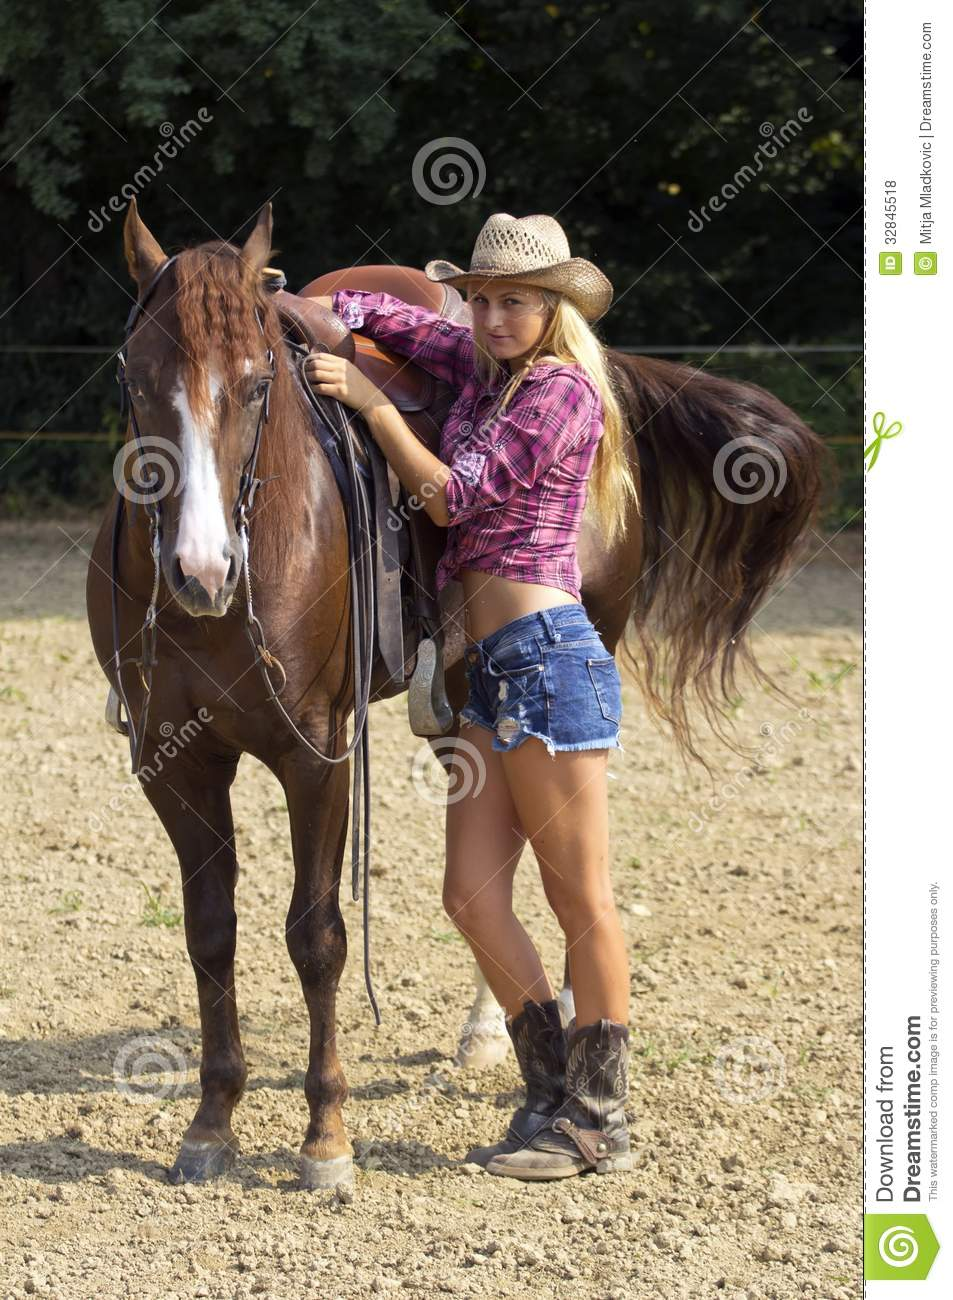 Cow-girl blonde